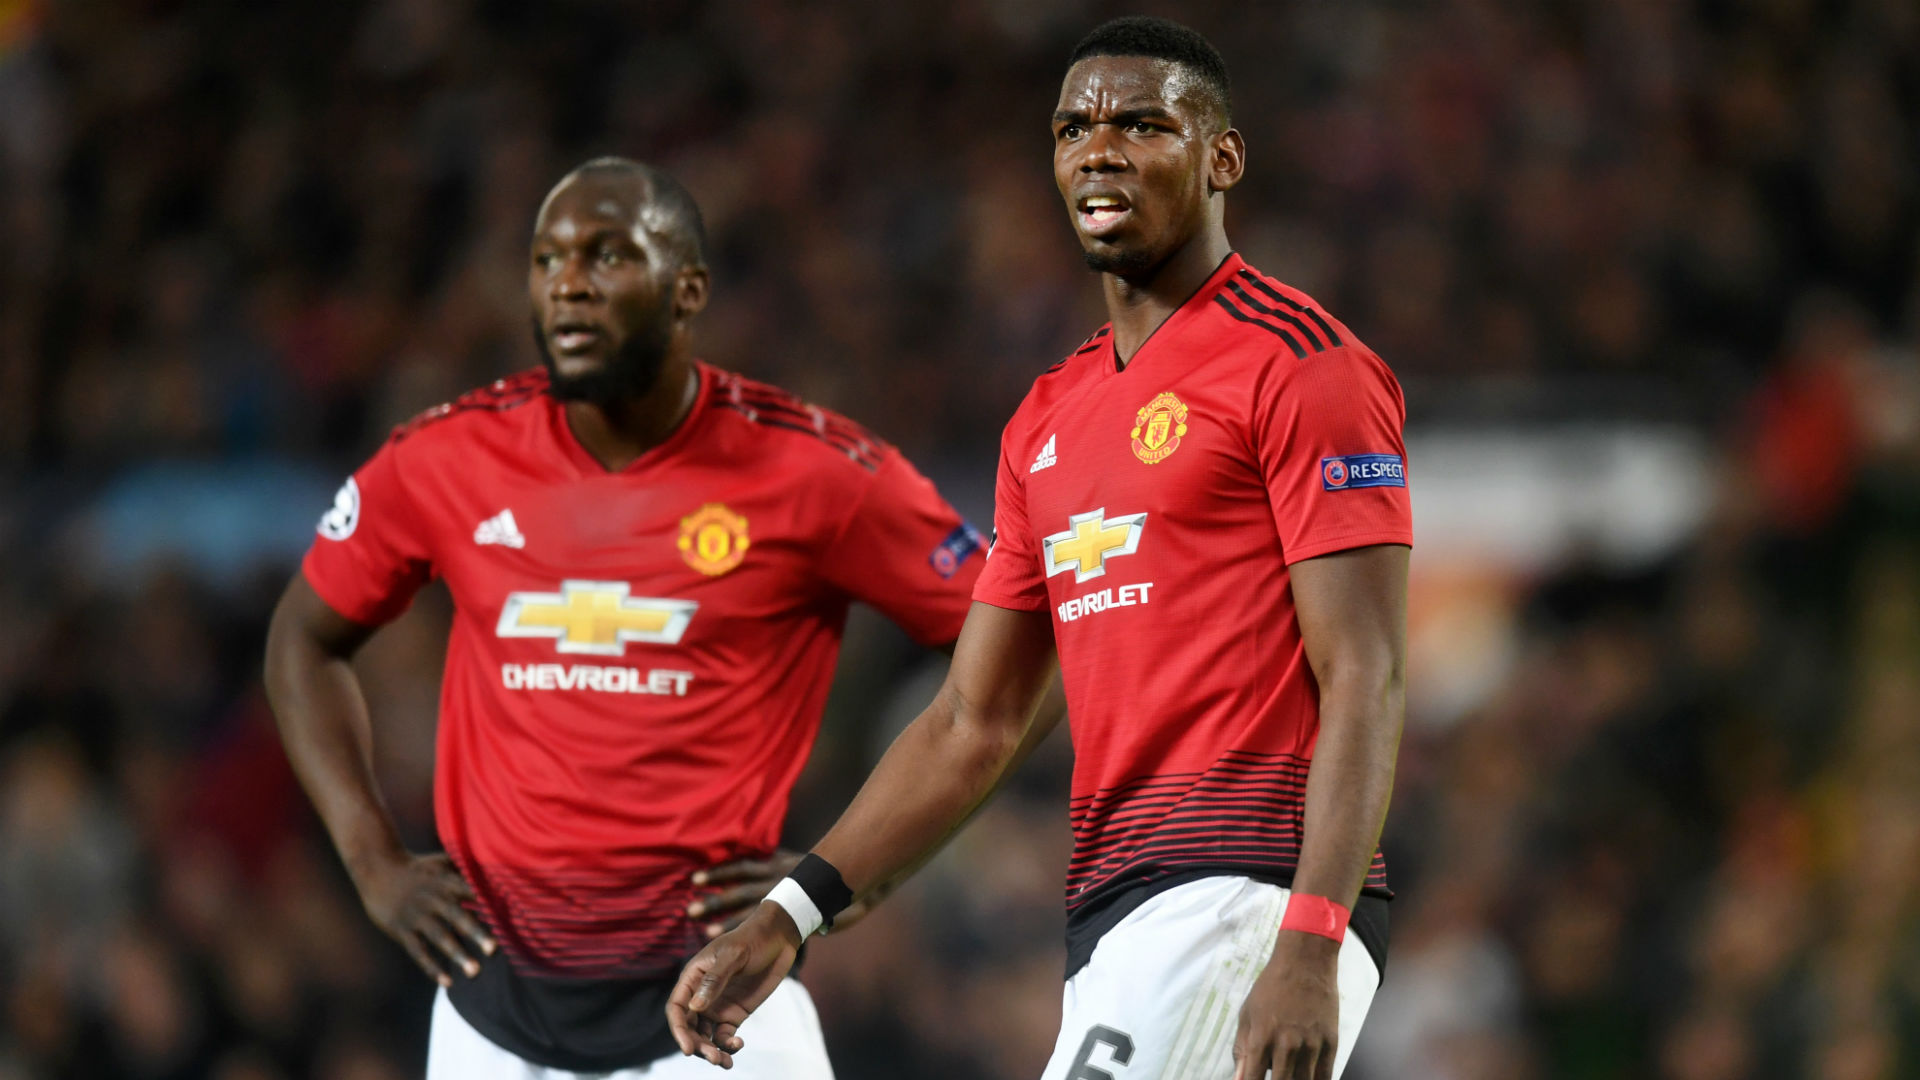 Paul Pogba Romelu Lukaku Manchester United Barcelona Champions League 2019